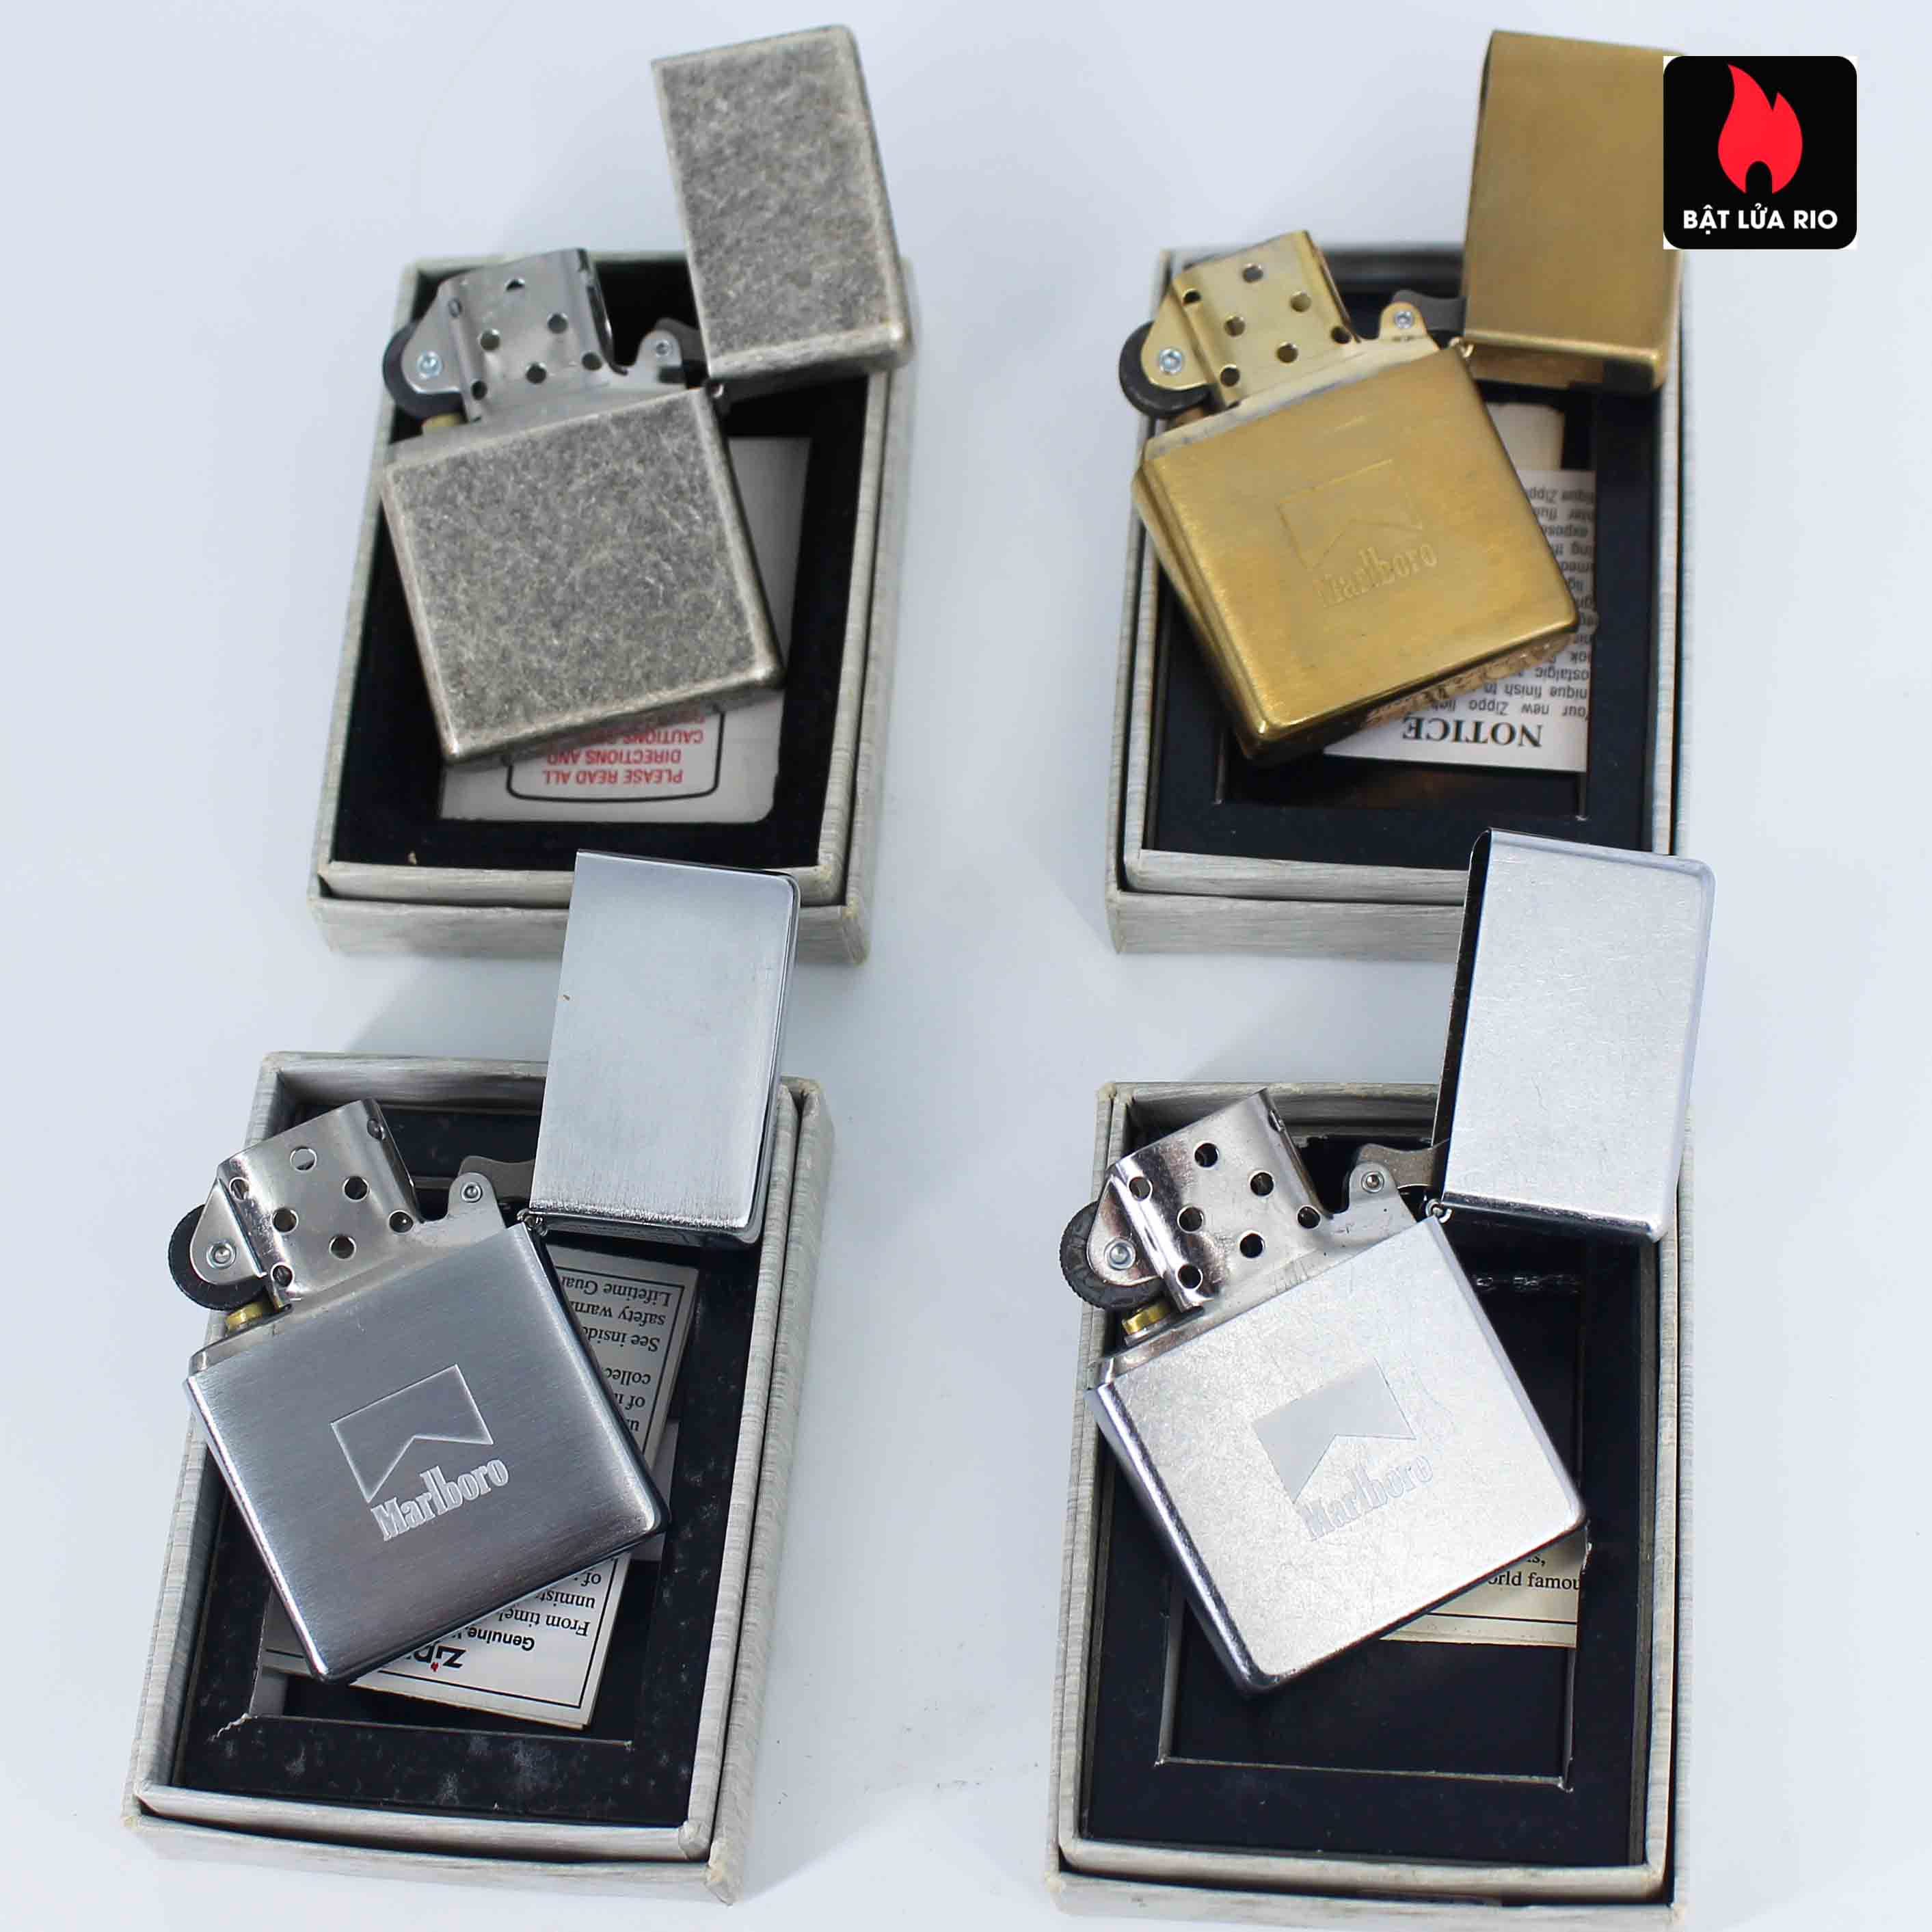 Zippo Set - Zippo 2000-2001 - Marlboro collection Limited Edition 3